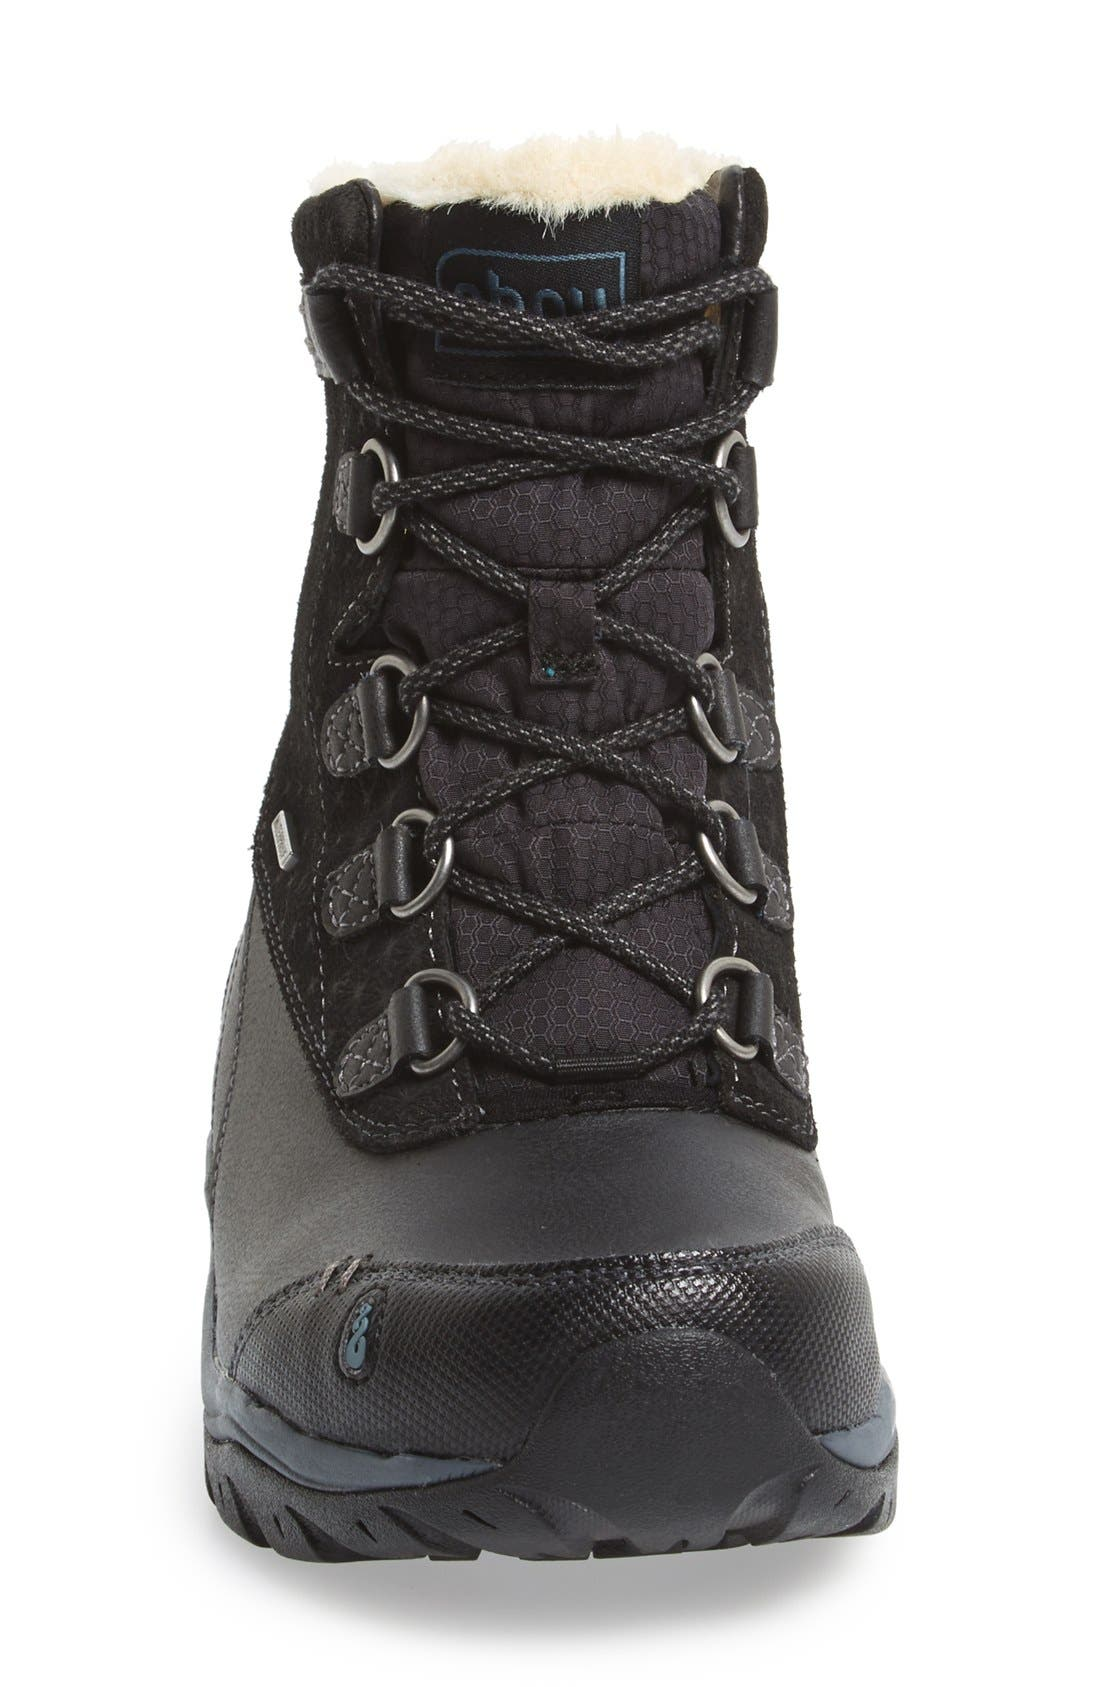 Alternate Image 3  - Ahnu 'Twain Harte' Insulated Waterproof Boot (Women)